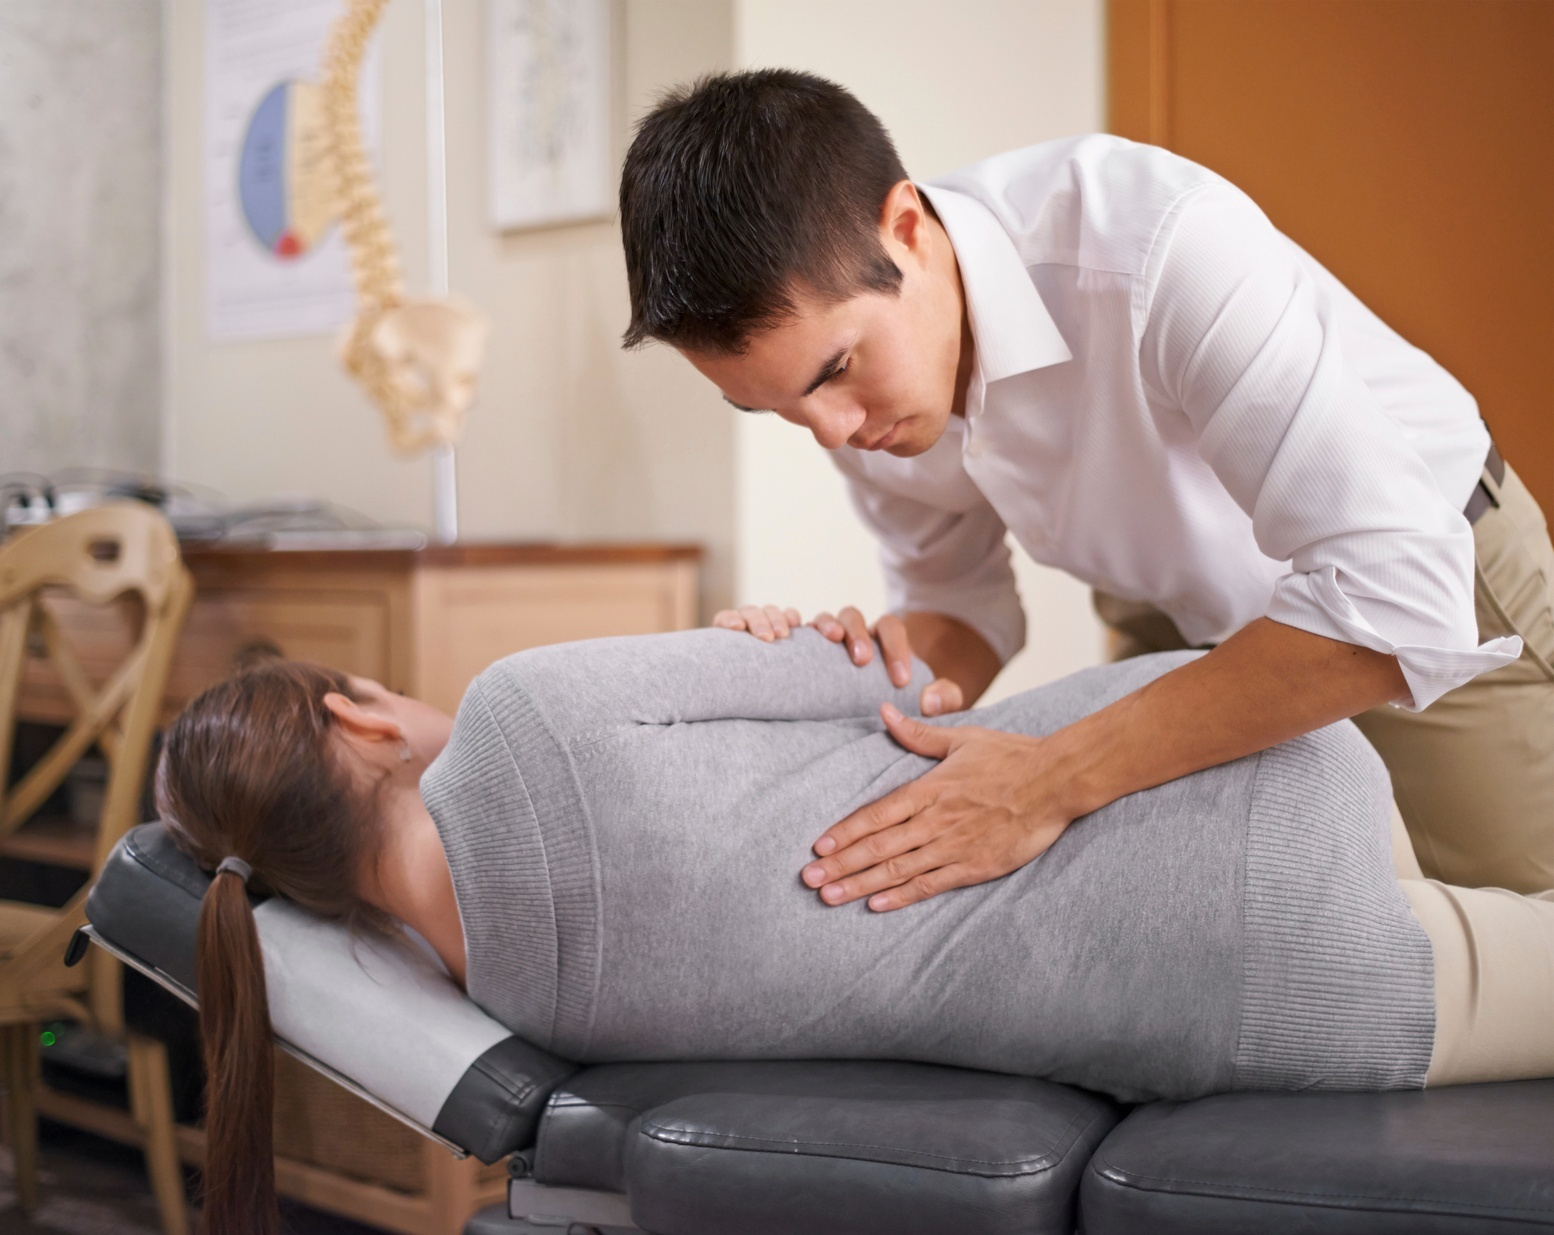 Back pain may not develop until days after your accident